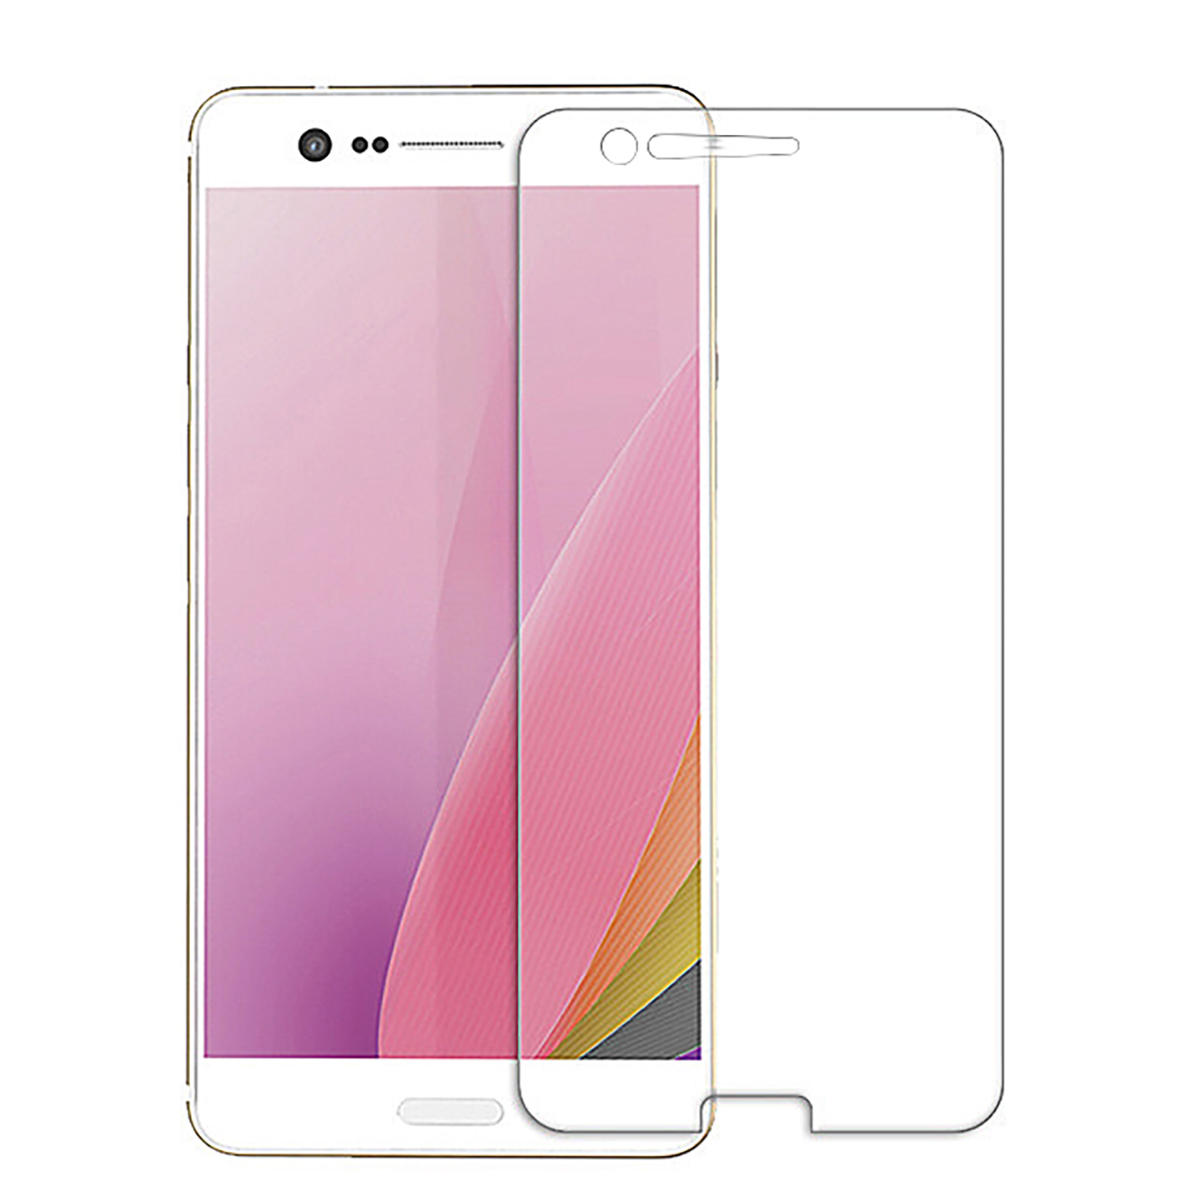 Bakeek 9H Anit-explosion Tempered Glass Screen Protector for Sharp Z3